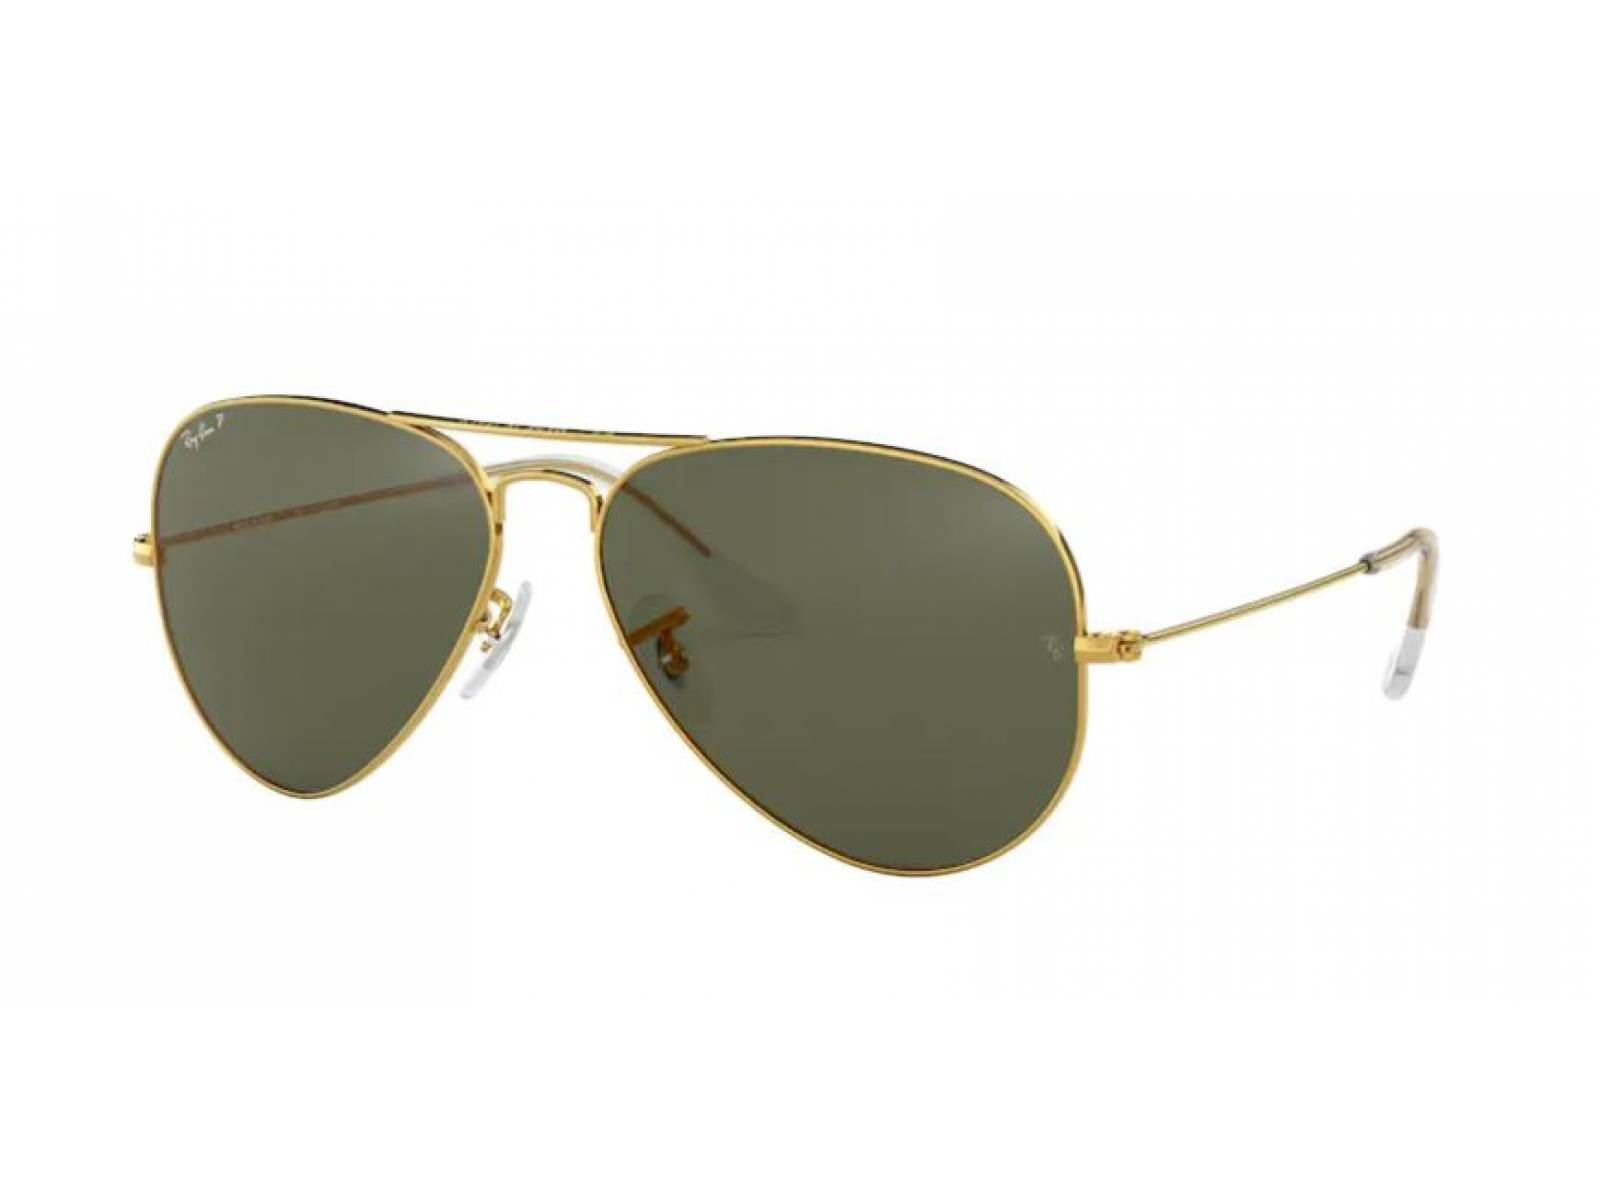 RAY-BAN RB 3025 167/1M 58